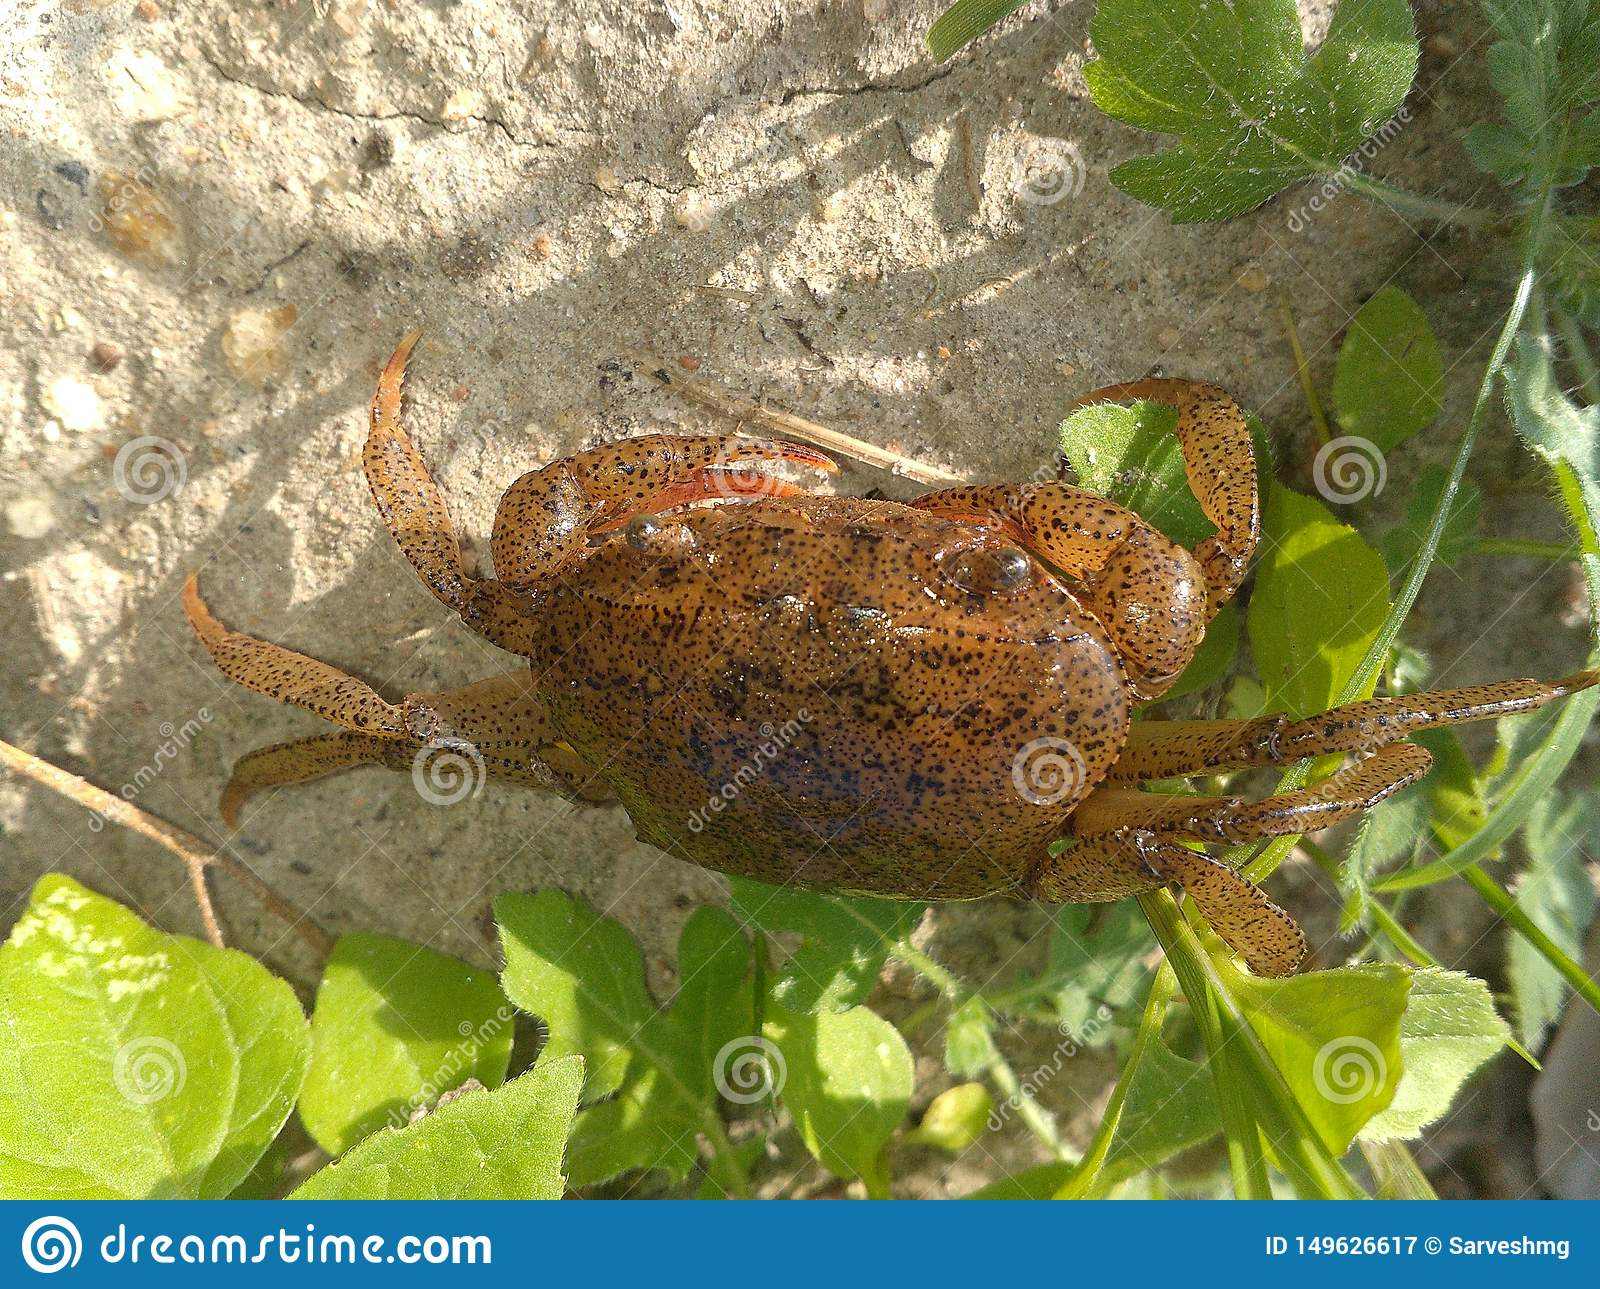 Tiny crab with a great body texture